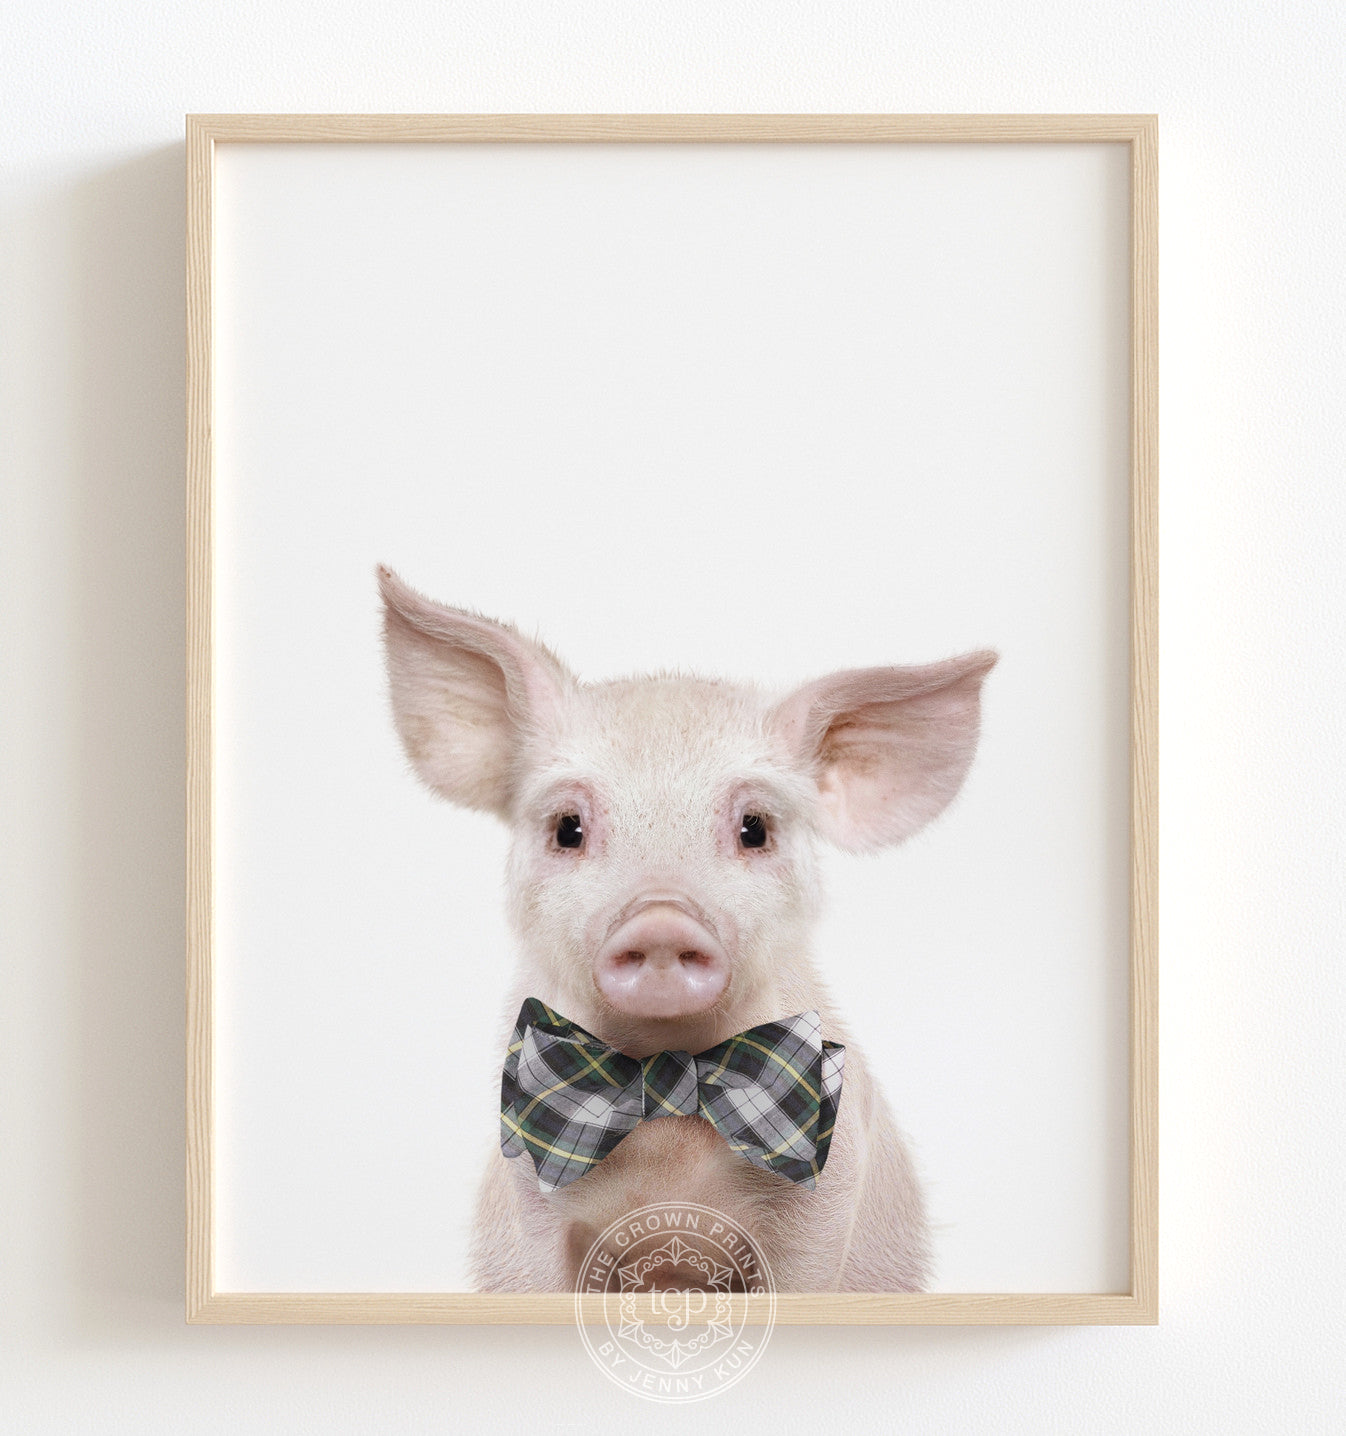 Baby Pig No. 2 with Bow Tie Printable Art